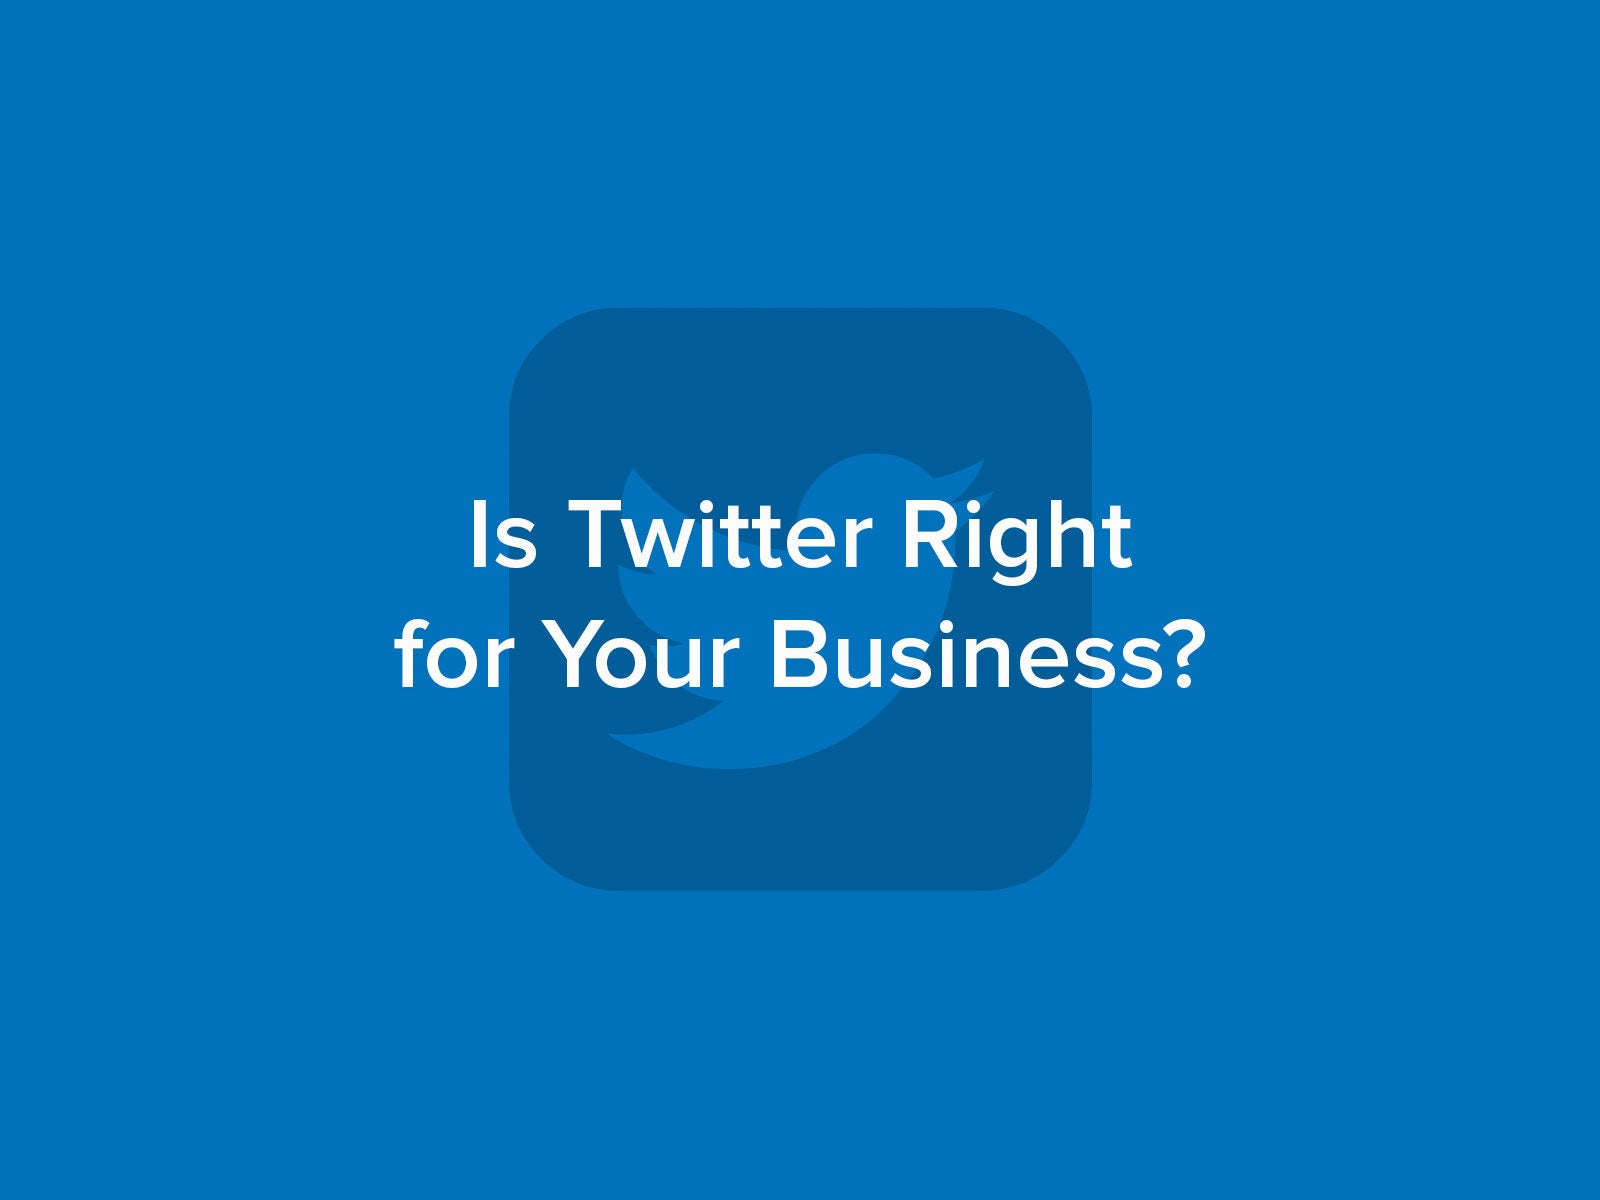 Deciding to use Twitter for Business